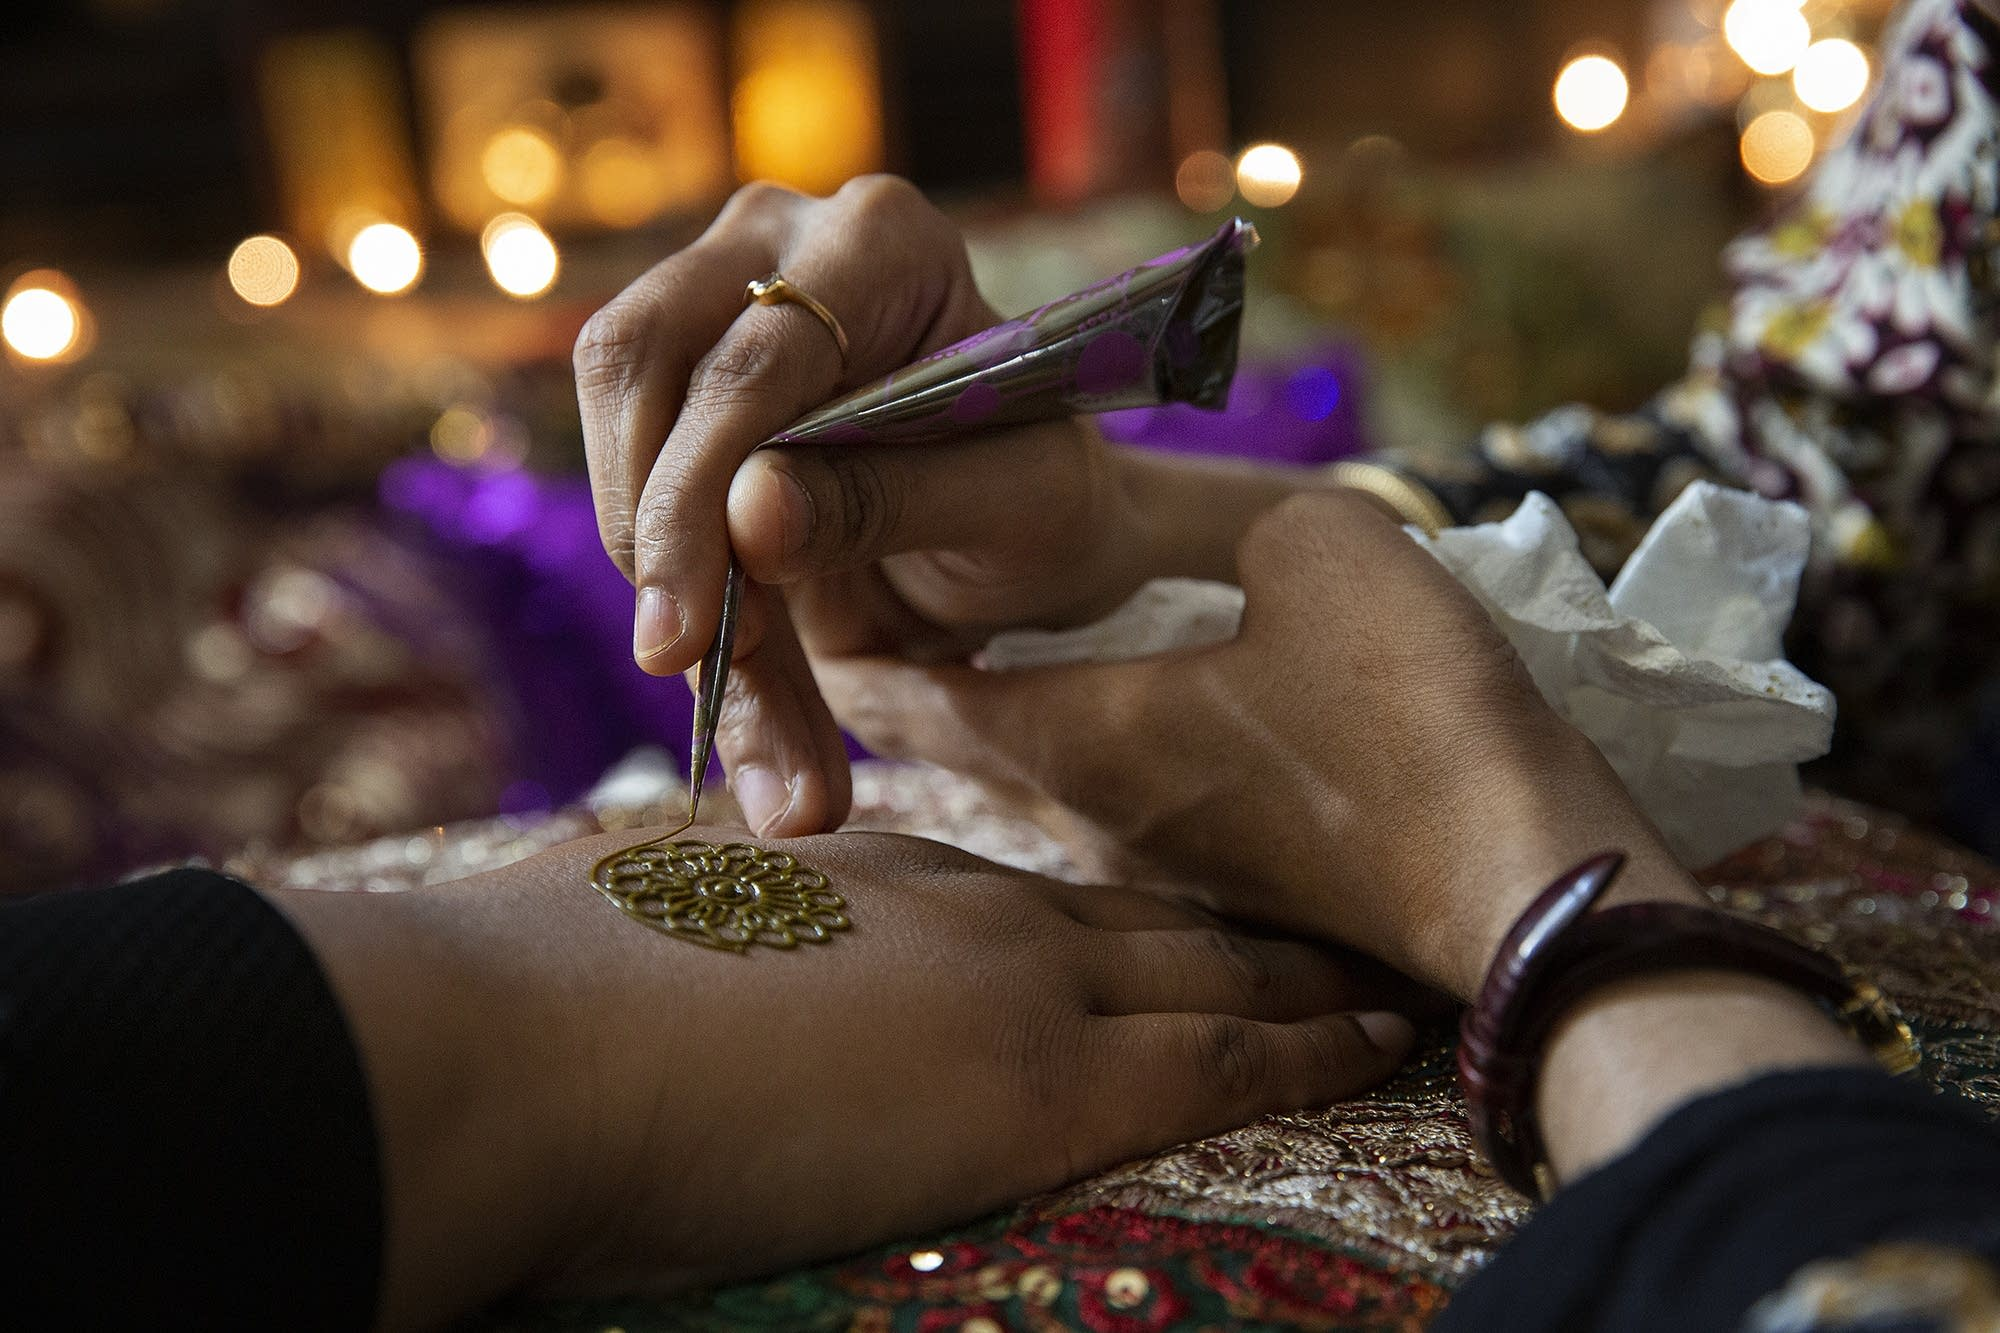 Hajira Begum draws a mandala henna design on Fatma Sheekh's hand.